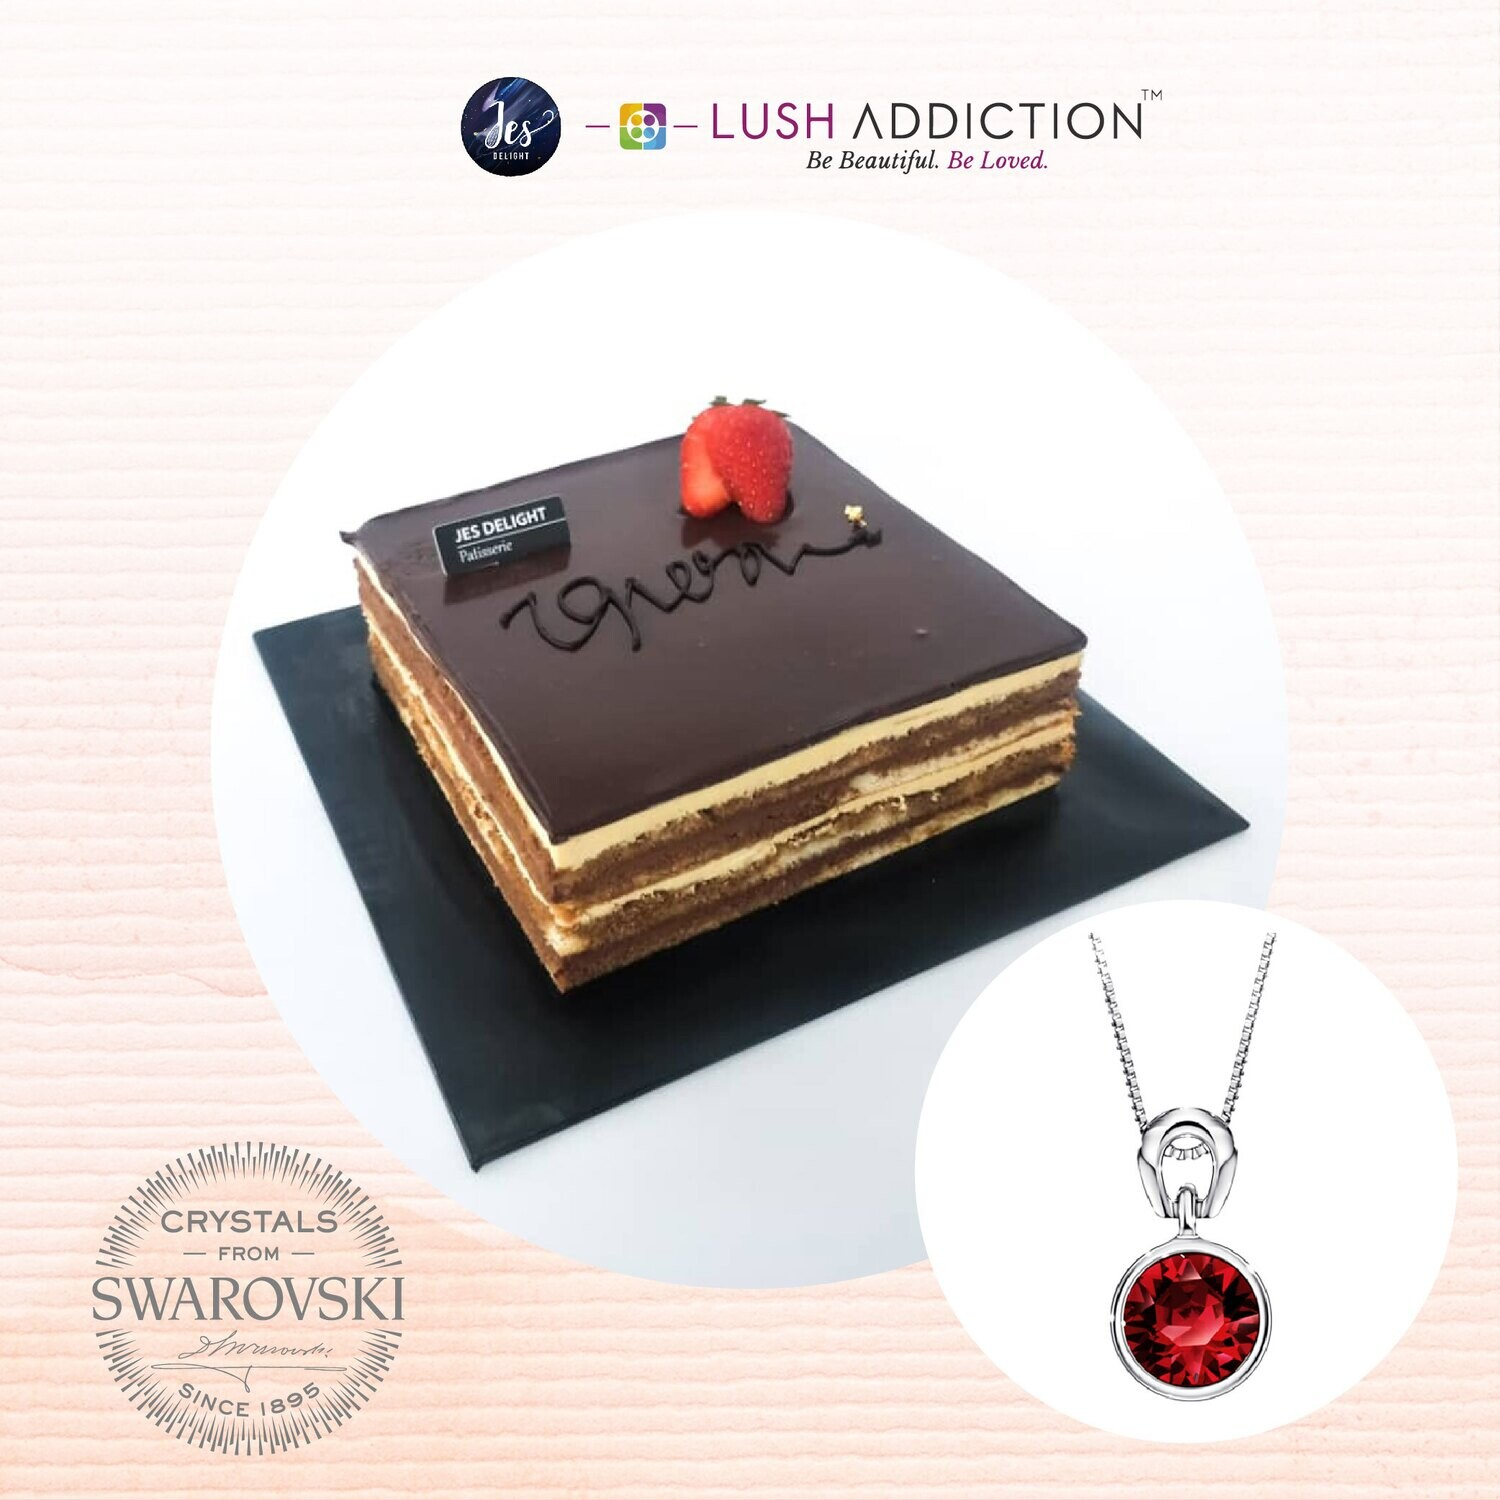 Opera Cake + Lush Solitaire Birthstone Necklace Bundle Deal (By: JES Delight from JB)